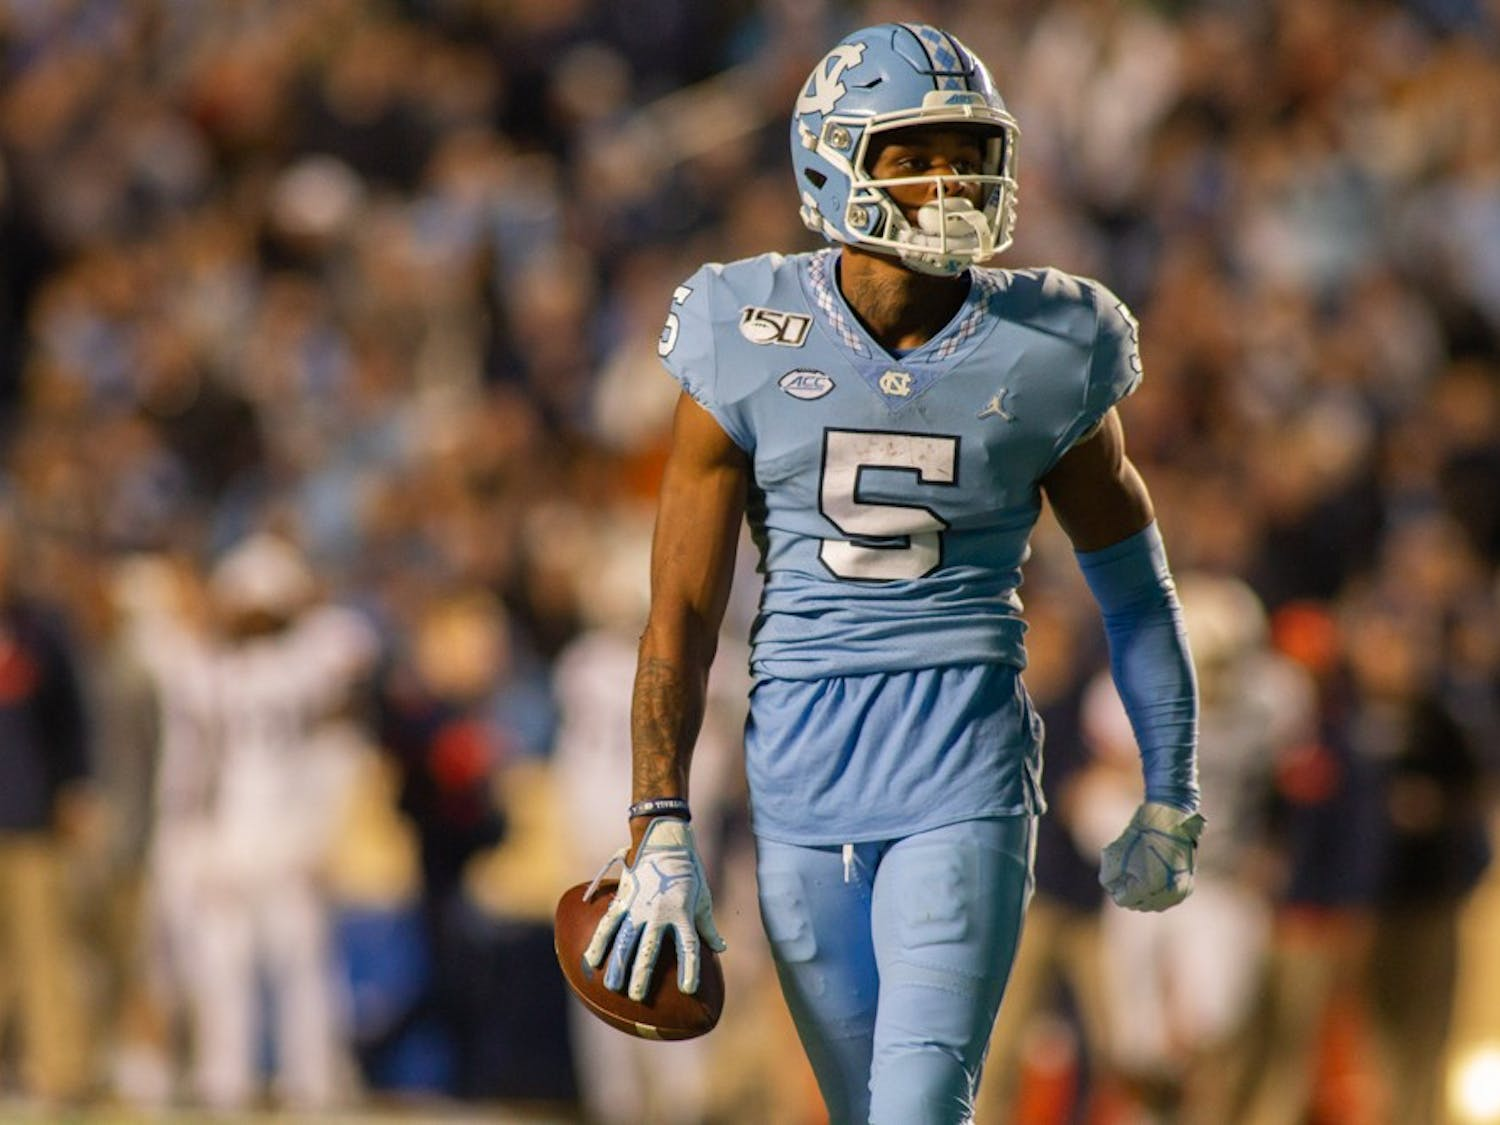 Wide Reciever Dazz Newsome (5) awaits the start of a new play during the game against Virginia on Saturday, Nov. 2, 2019. UNC lost to Virginia 38-31.